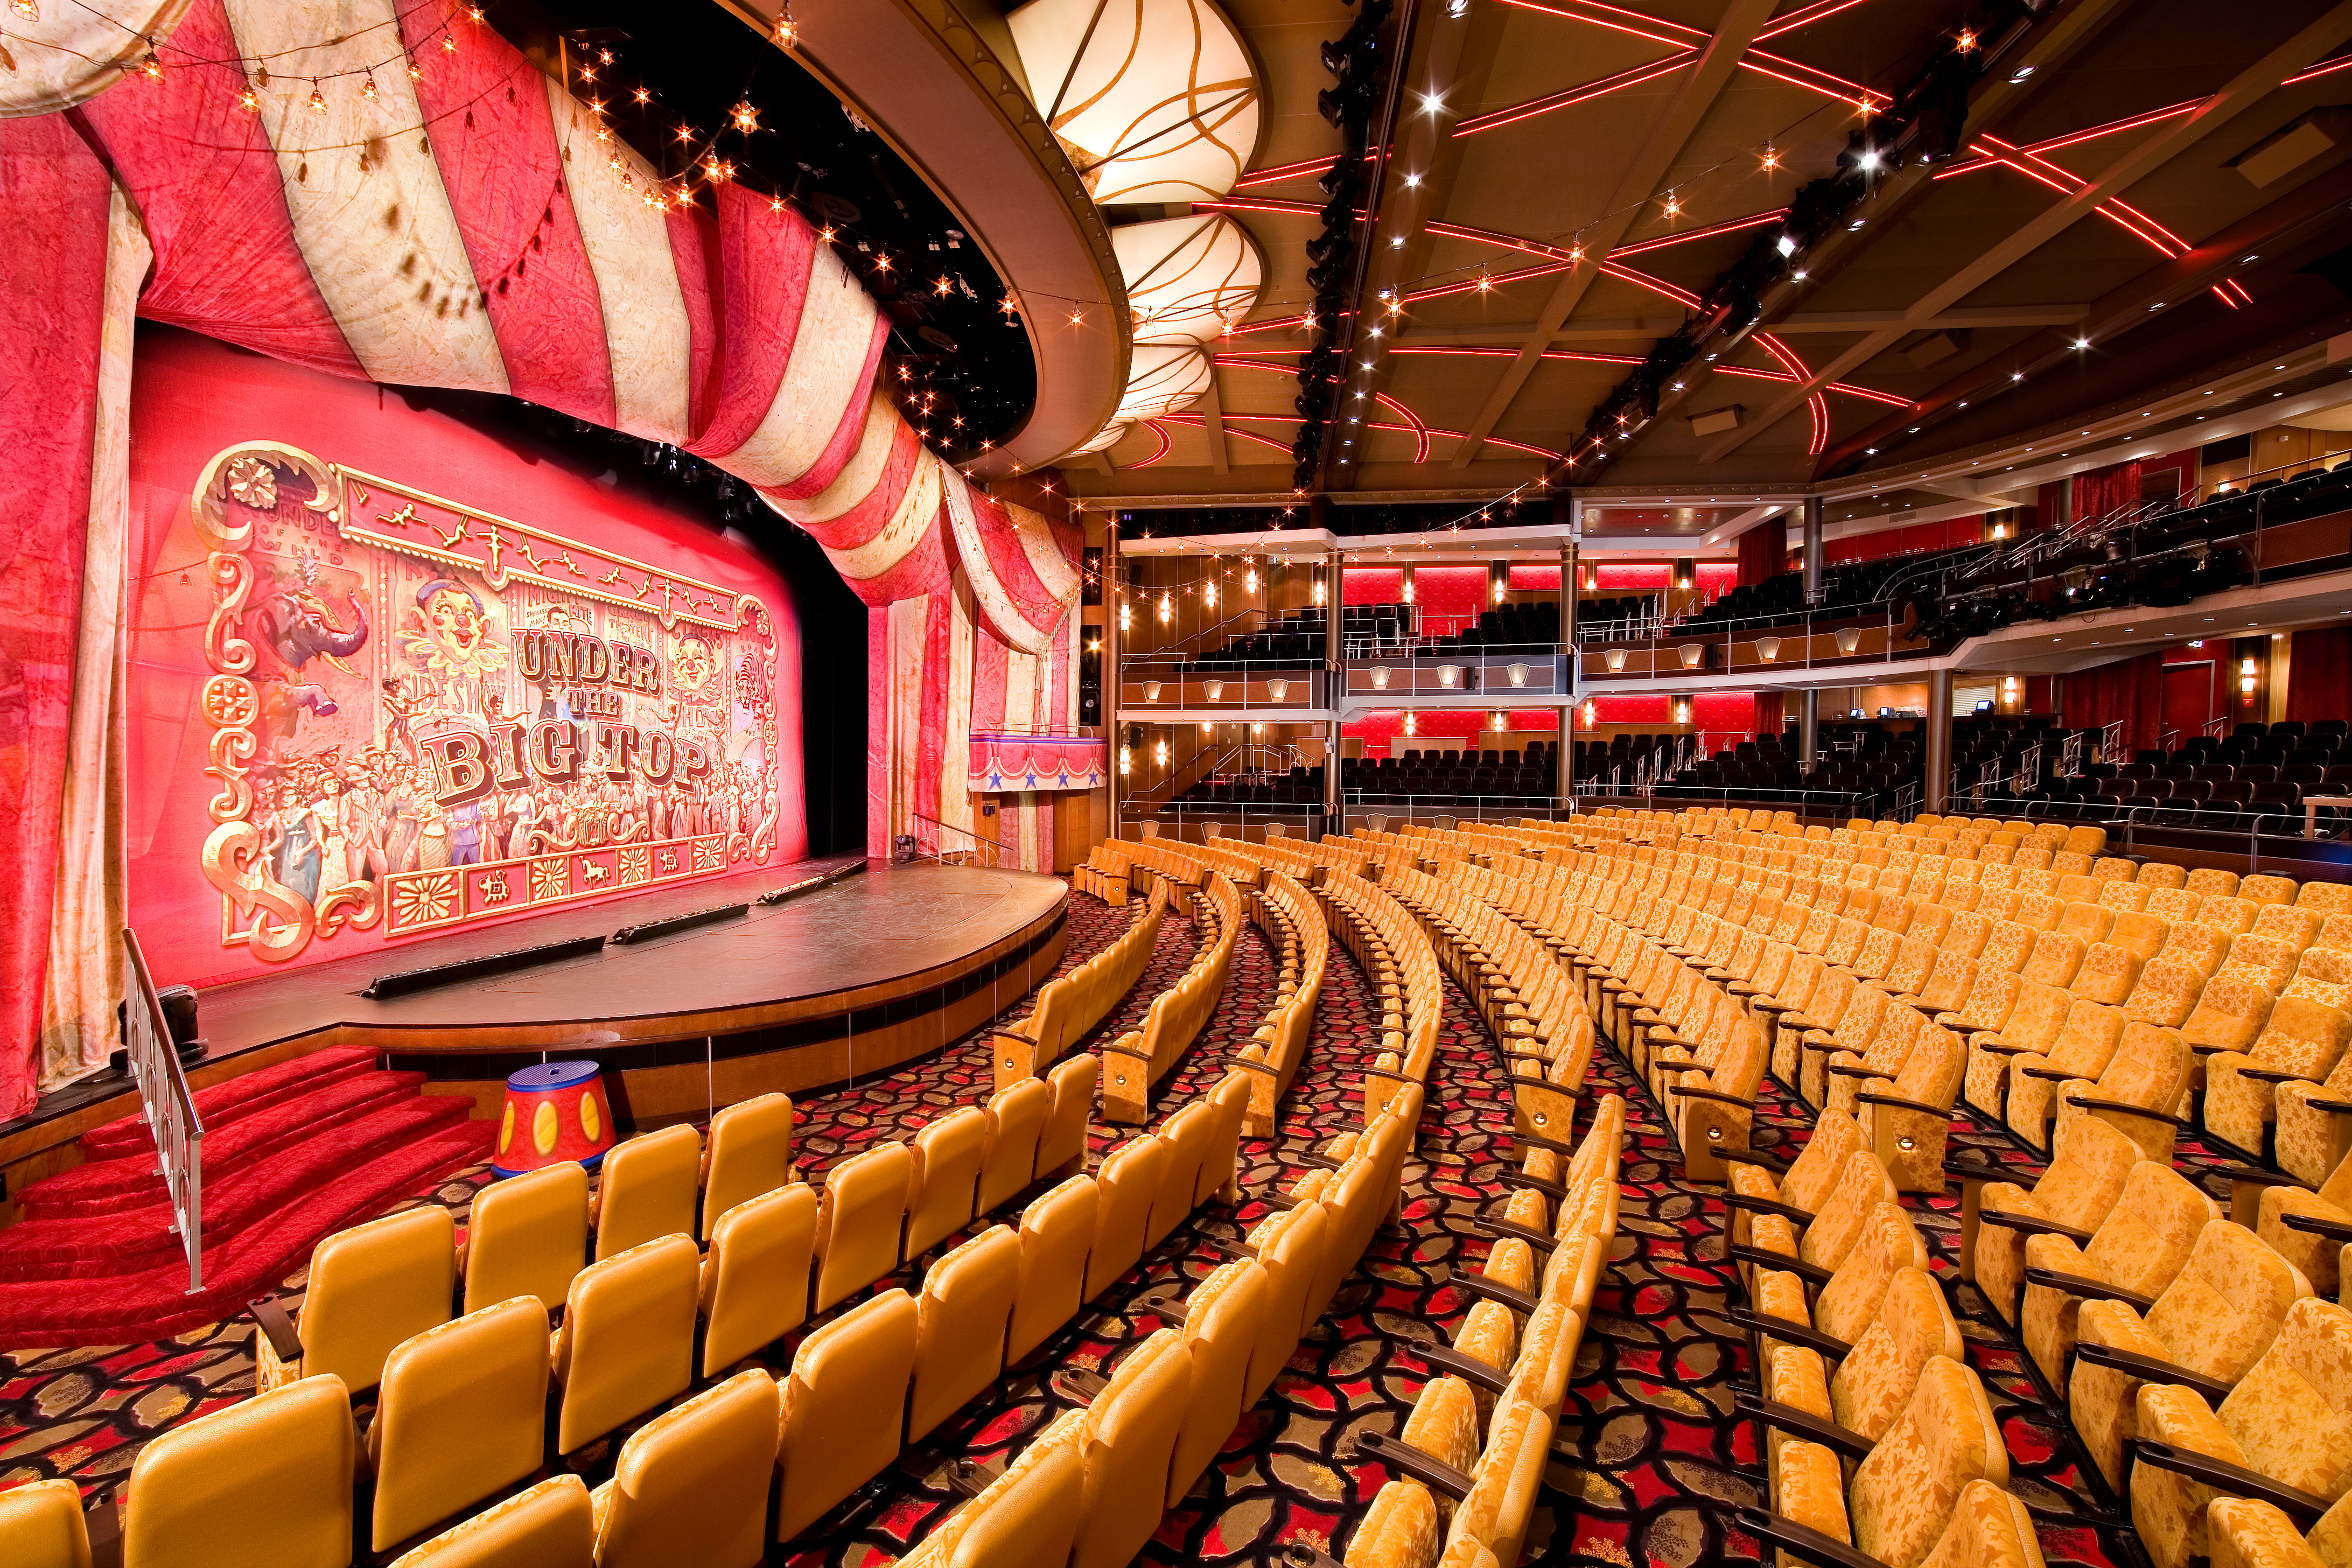 Royal Caribbean Independance of the seas Interior new Theater.jpg